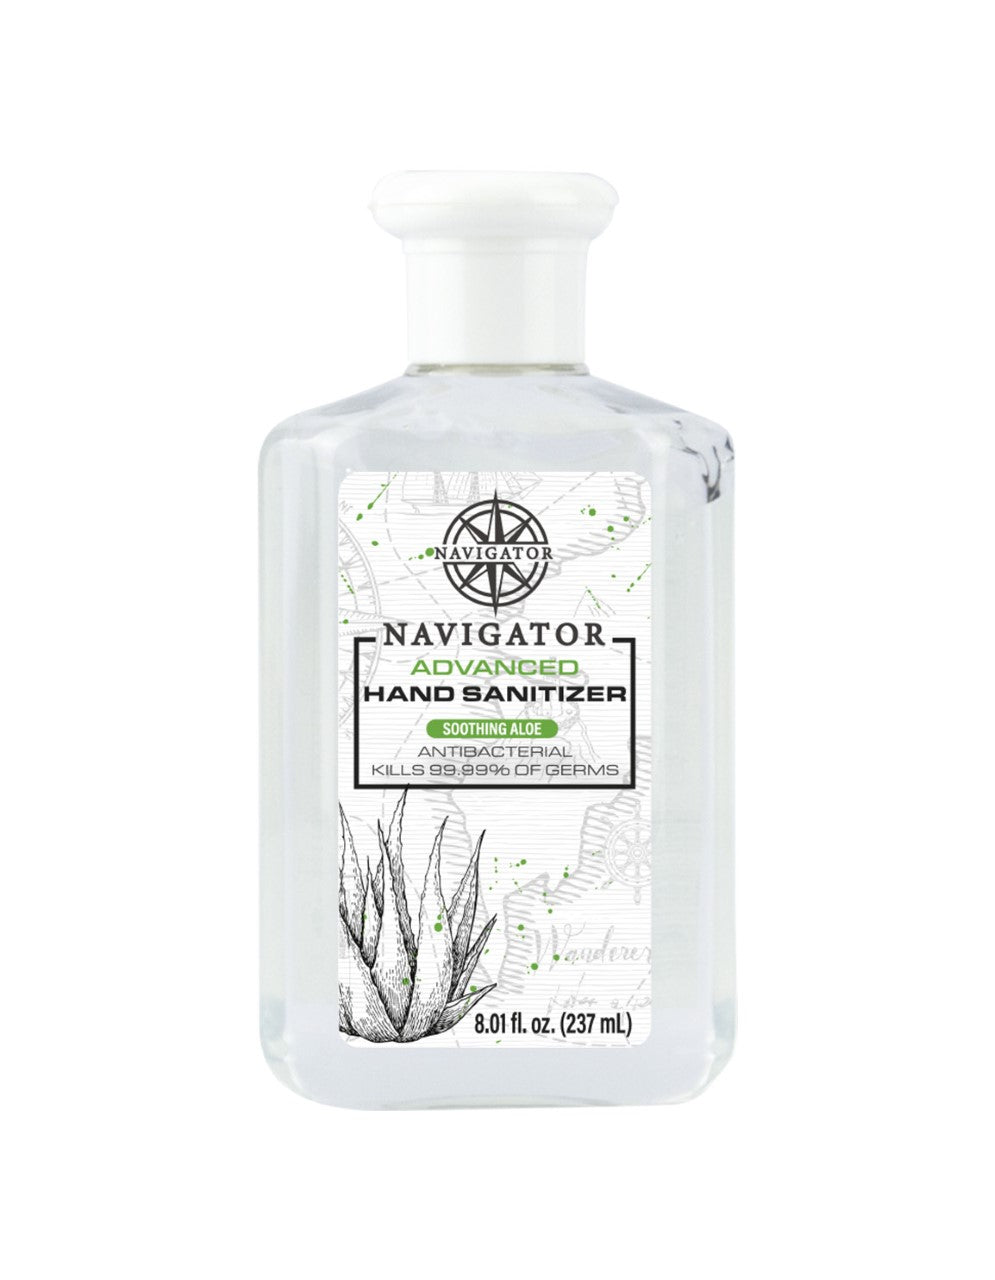 Hand Sanitizer (Ethyl Alcohol) 237mL